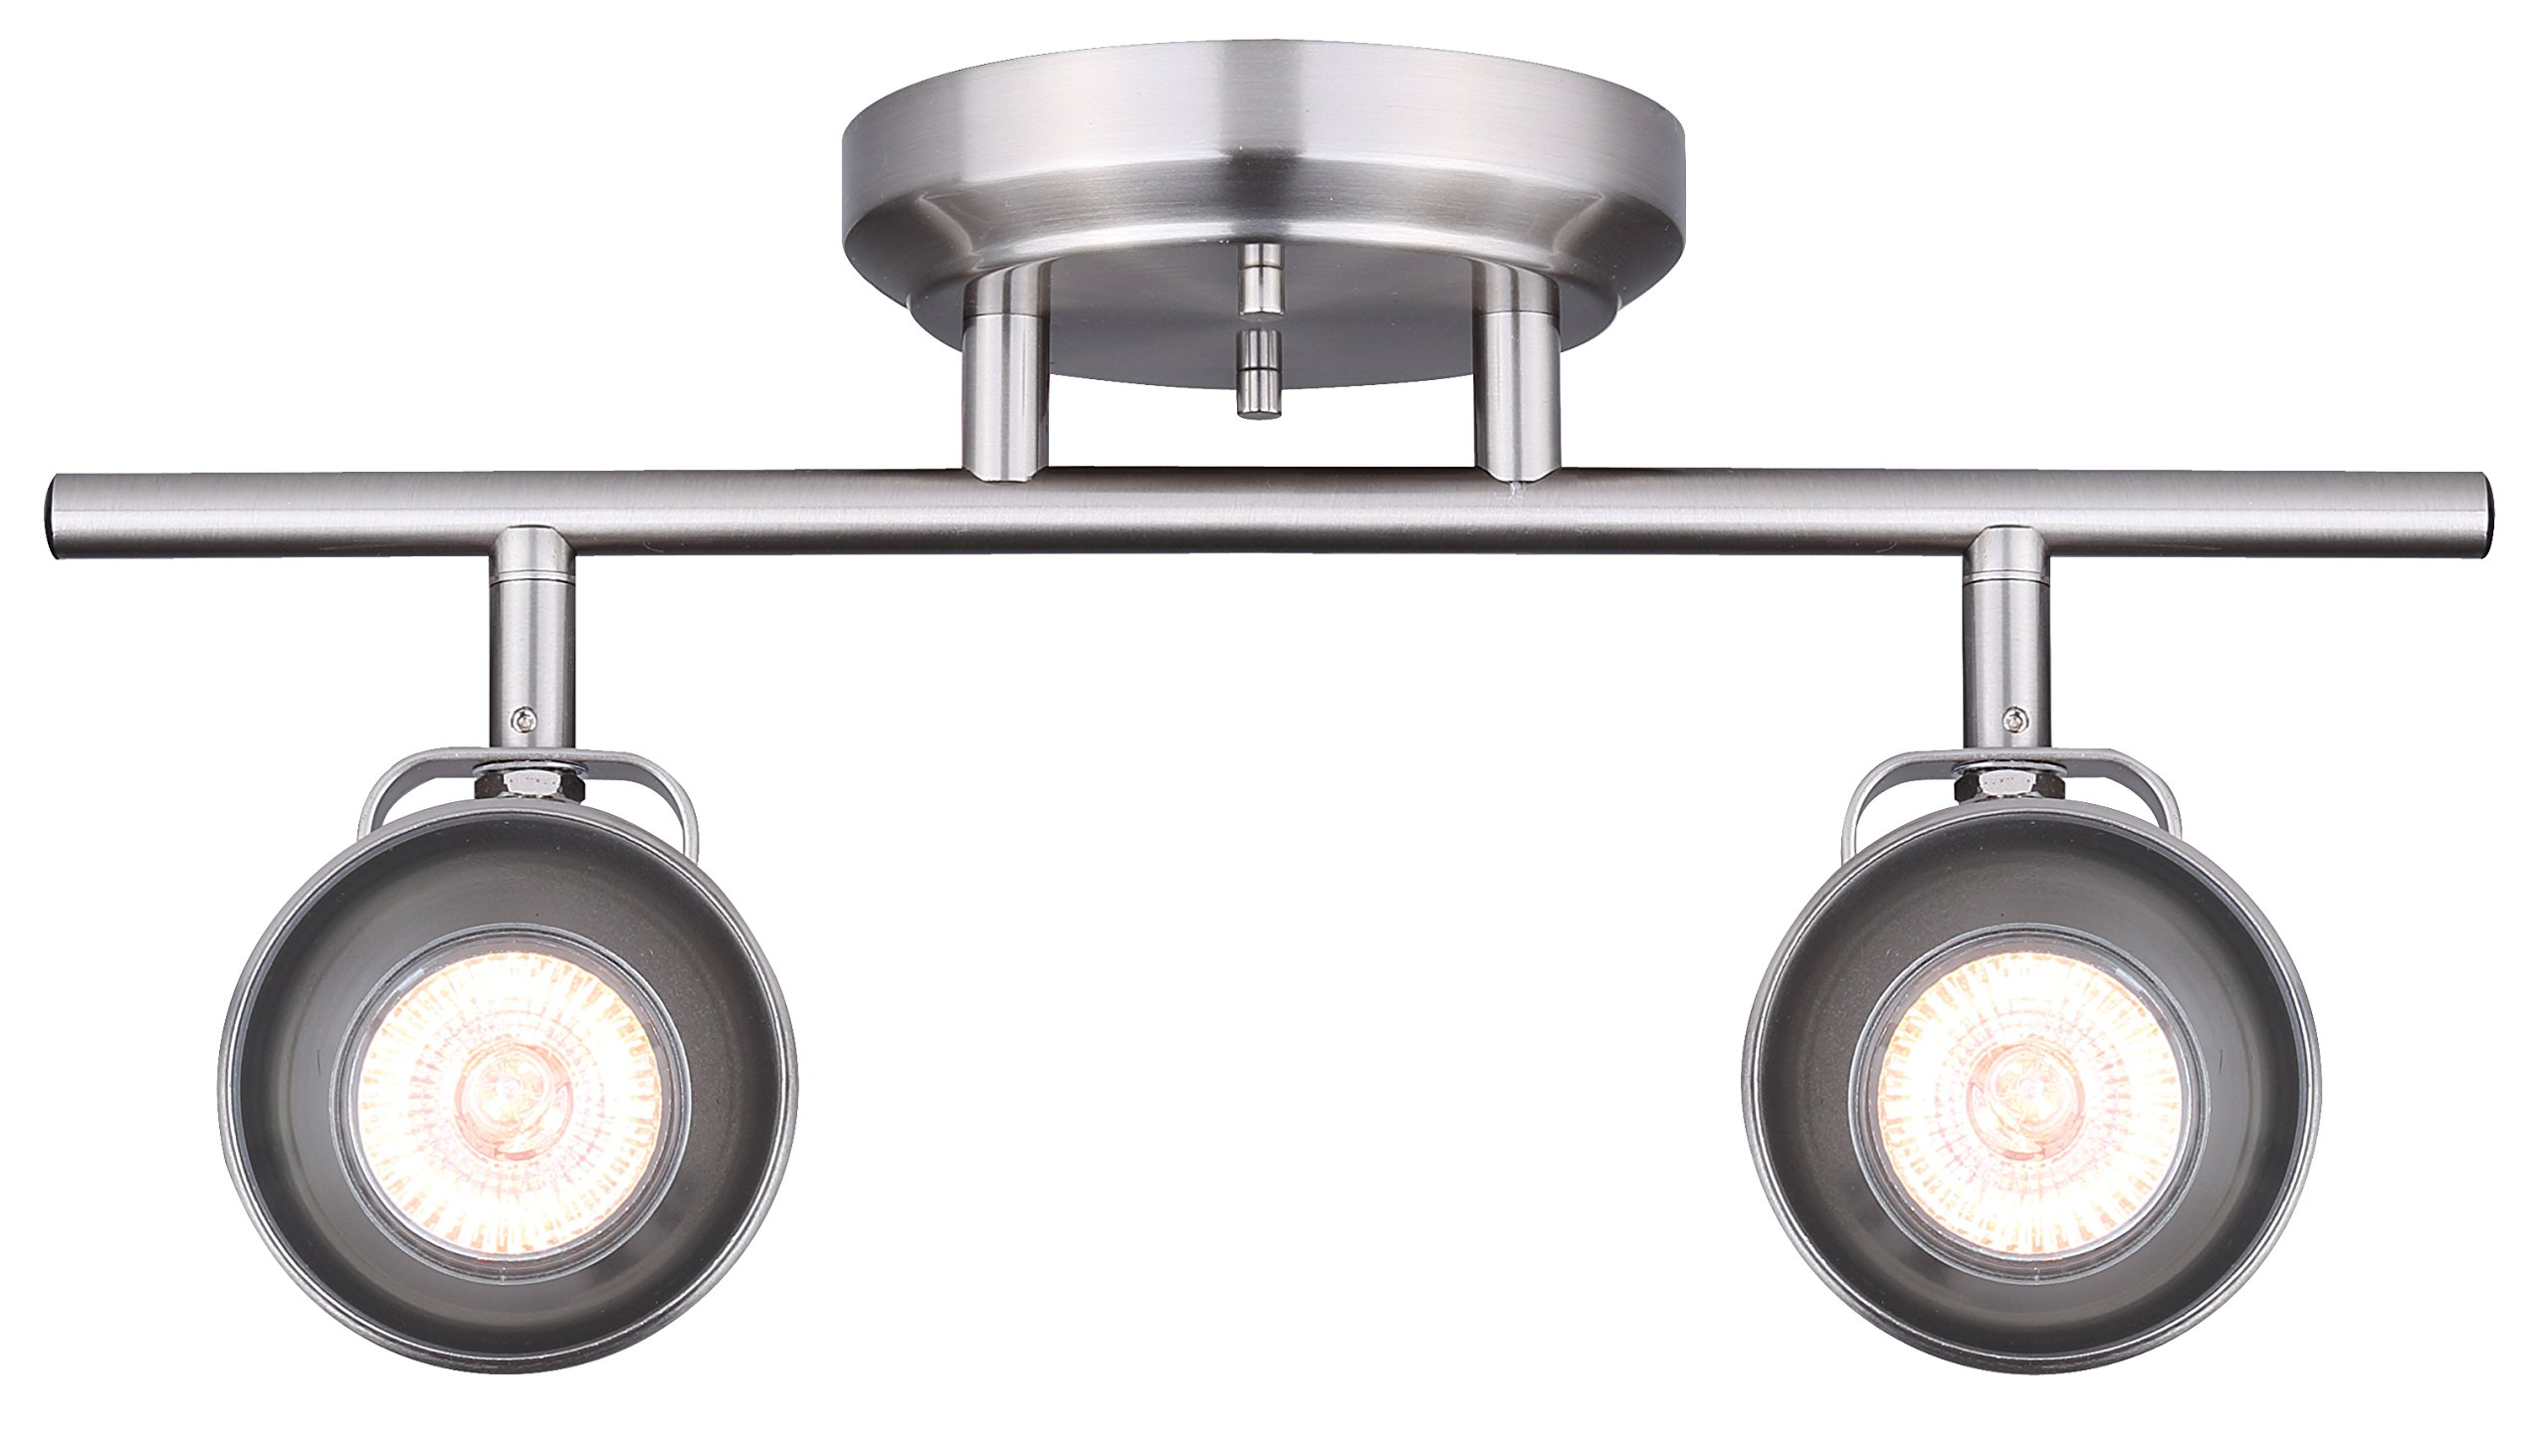 CANARM IT622A02BN10 Ltd Polo 2 Light Track Rail Adjustable Heads, Brushed Nickel